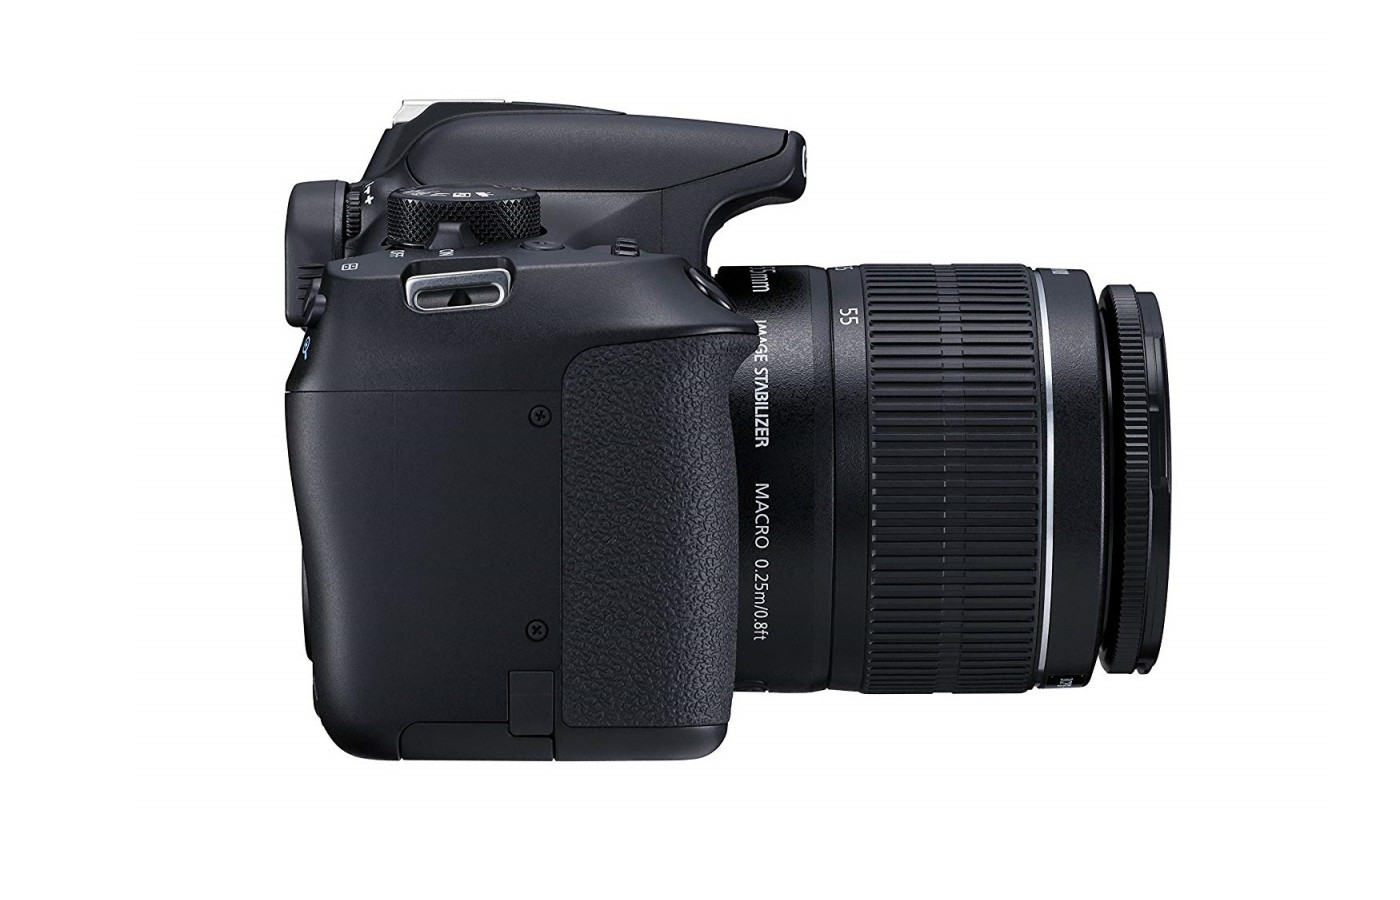 The Canon EOS 1300D offers a a large ISO sensitivity range of ISO 100-6400 which reduces the need for harsh flashes.